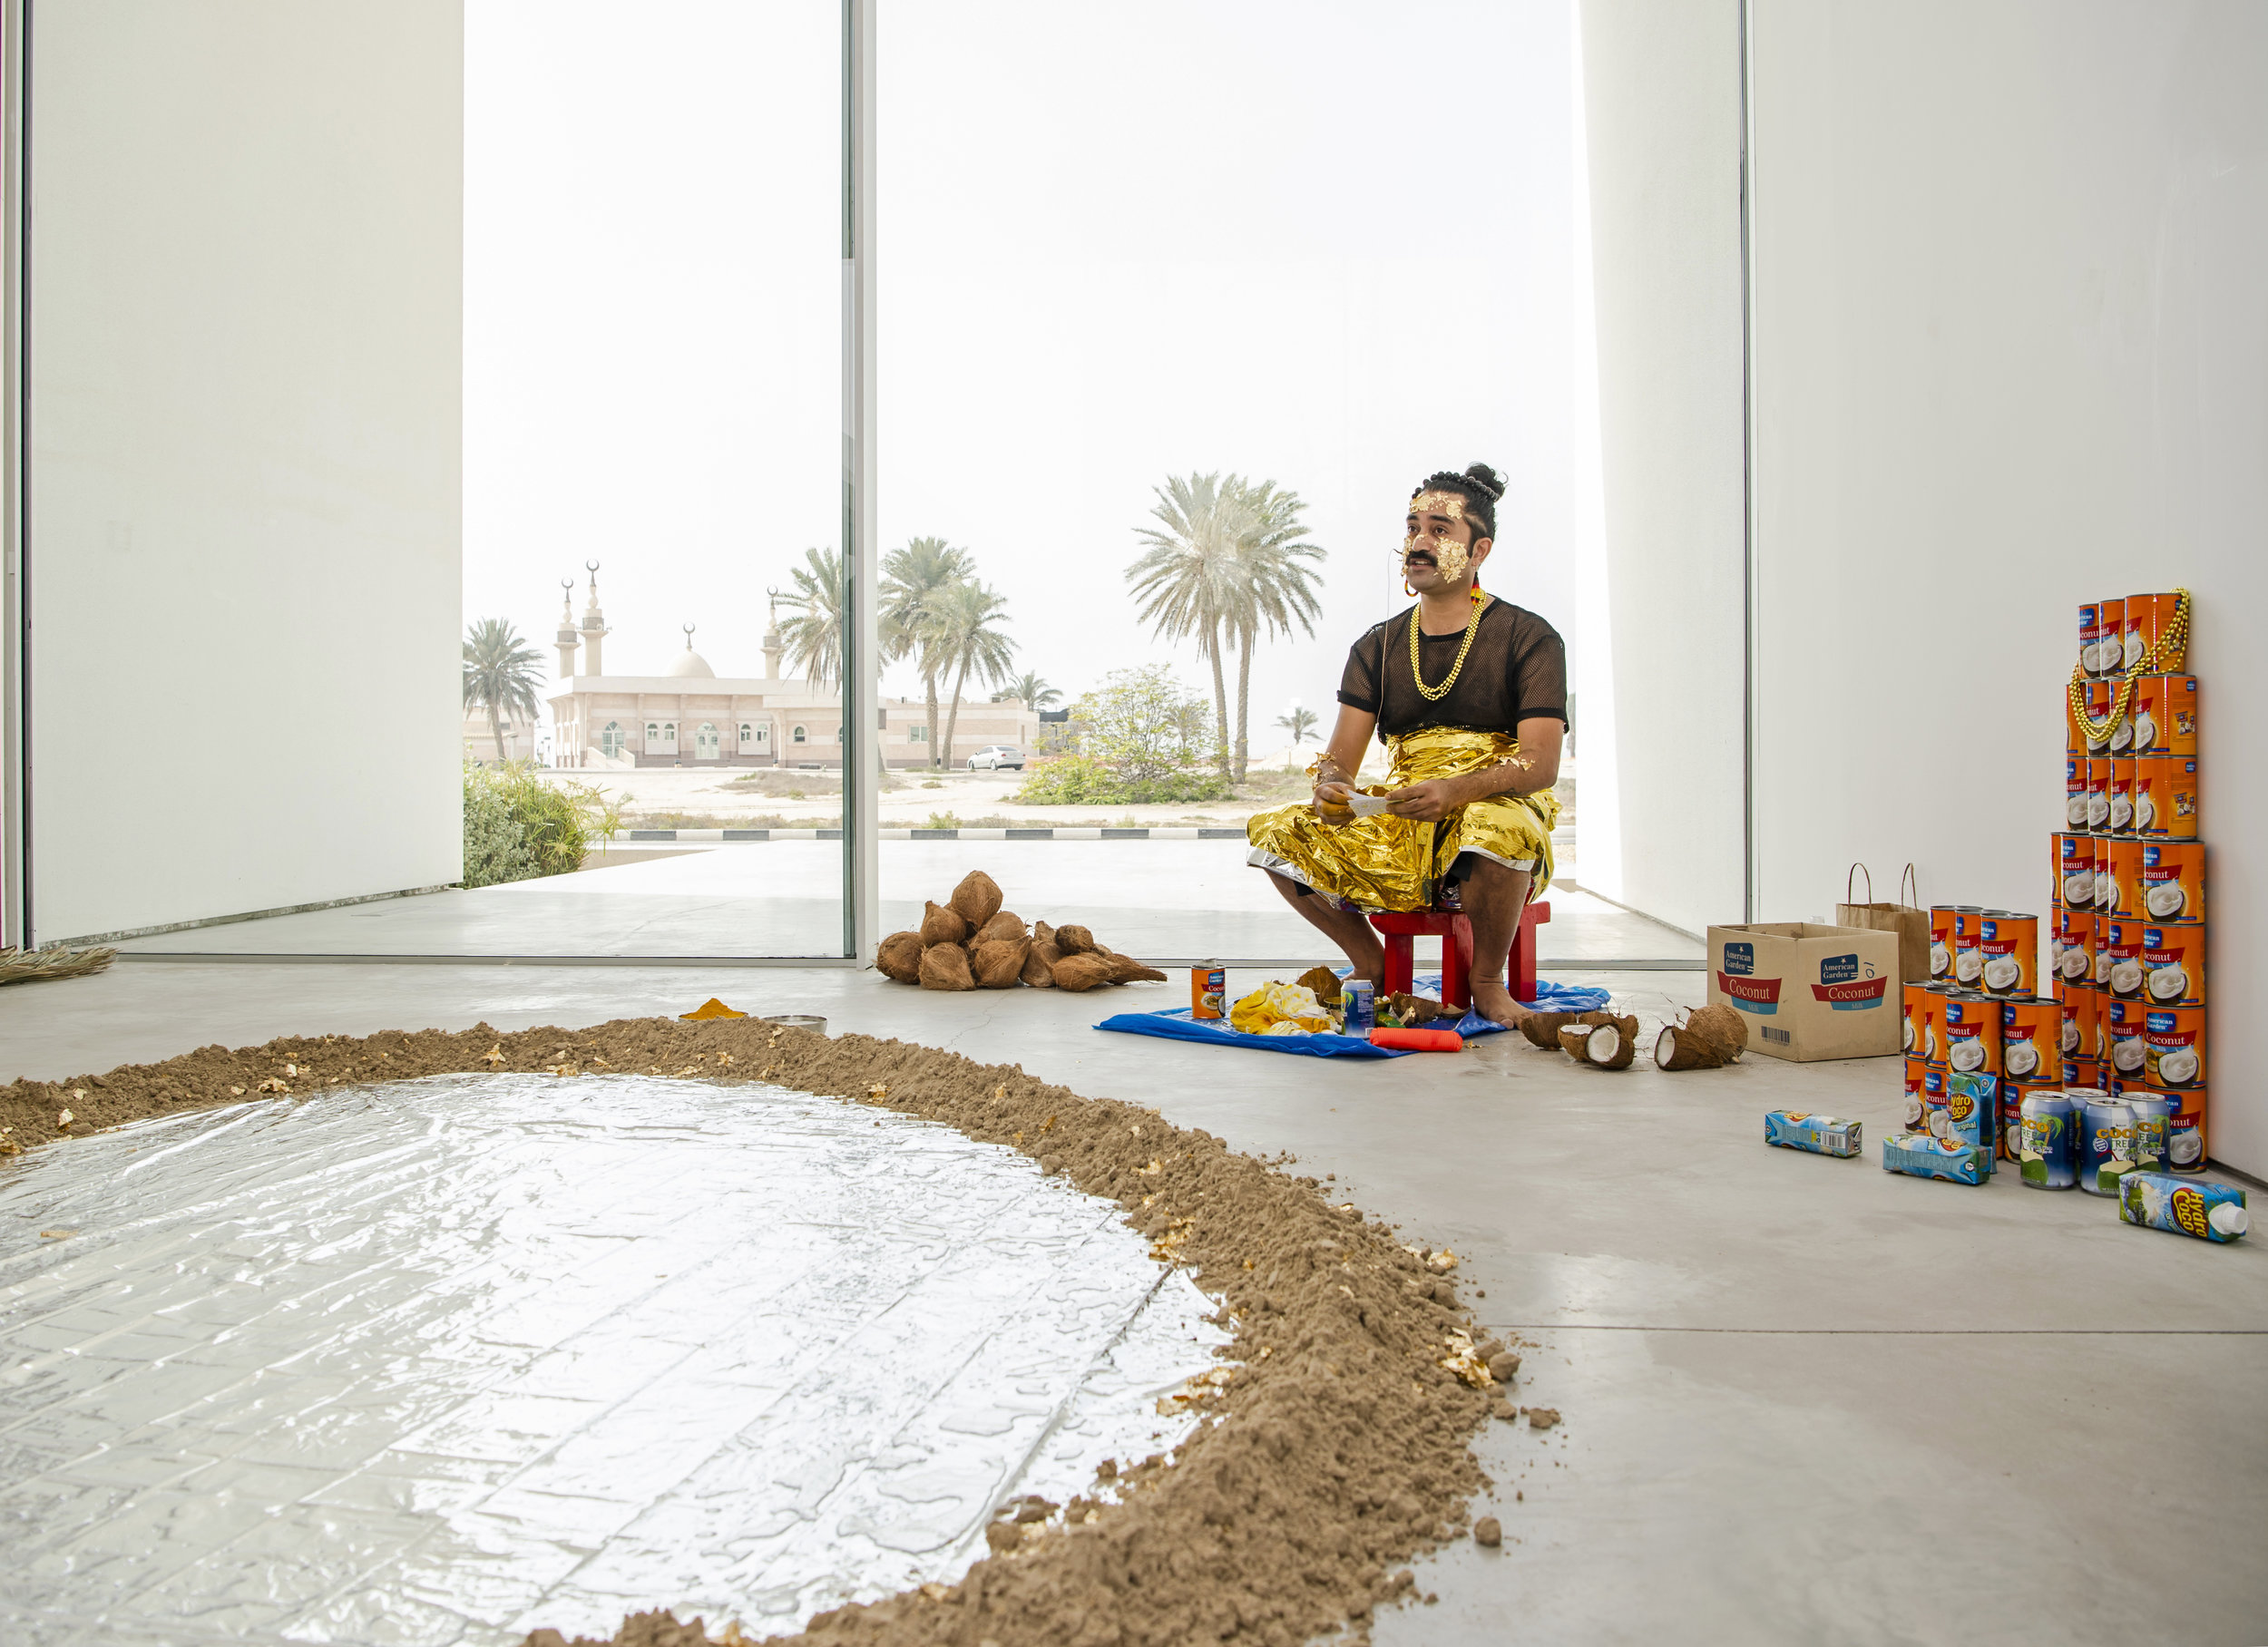 tagatanuʻu (2019) by Léuli Eshrāghi, Sharjah Biennial 14 Beyond the Echo Chamber - Image courtesy of Sharjah Art Foundation 02.jpg